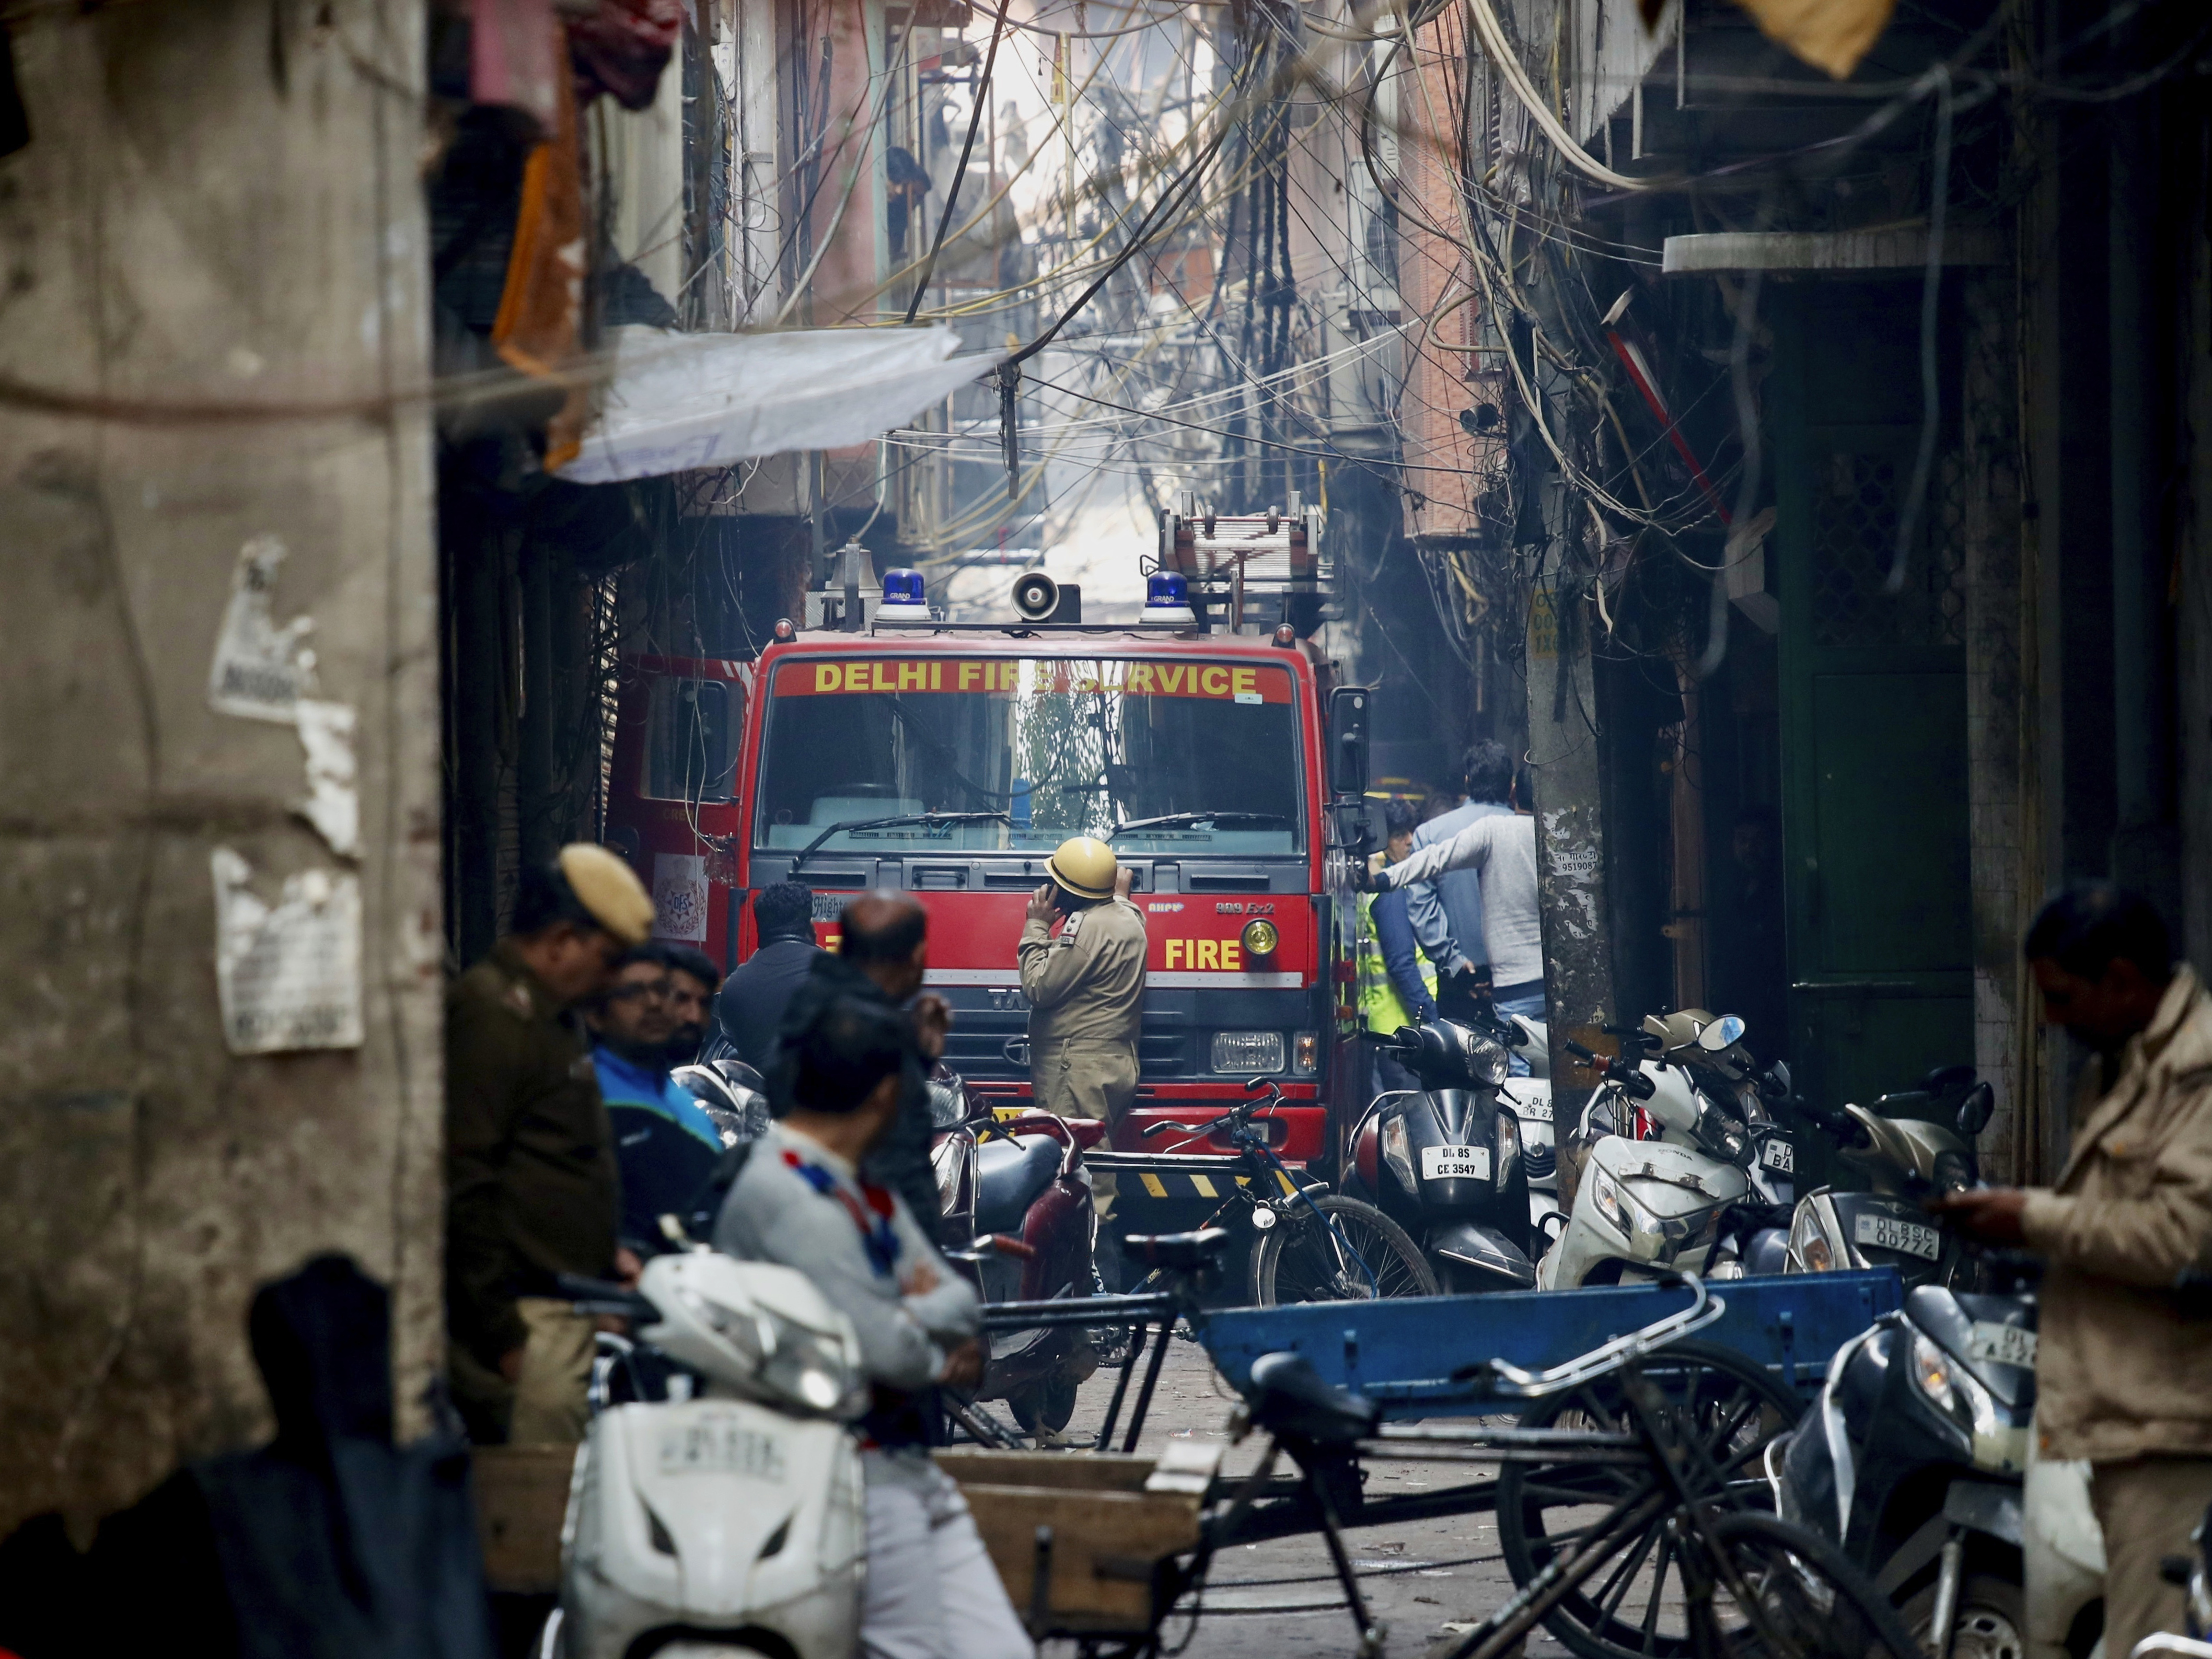 43 Dead In 'Extremely Horrific' Fire At New Delhi Factory